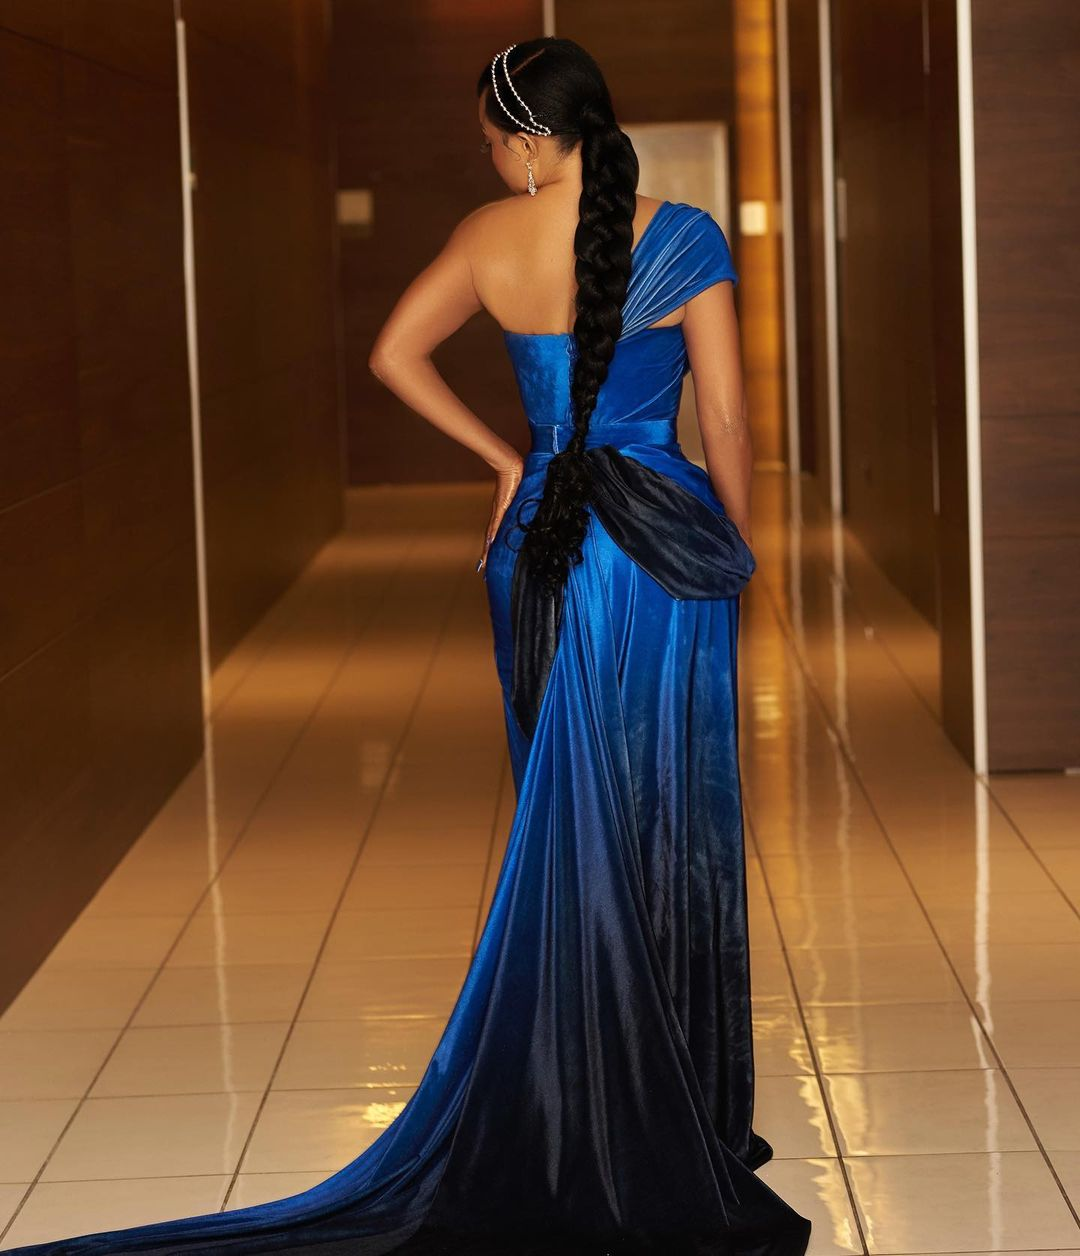 Toke Makinwa in a blue dress